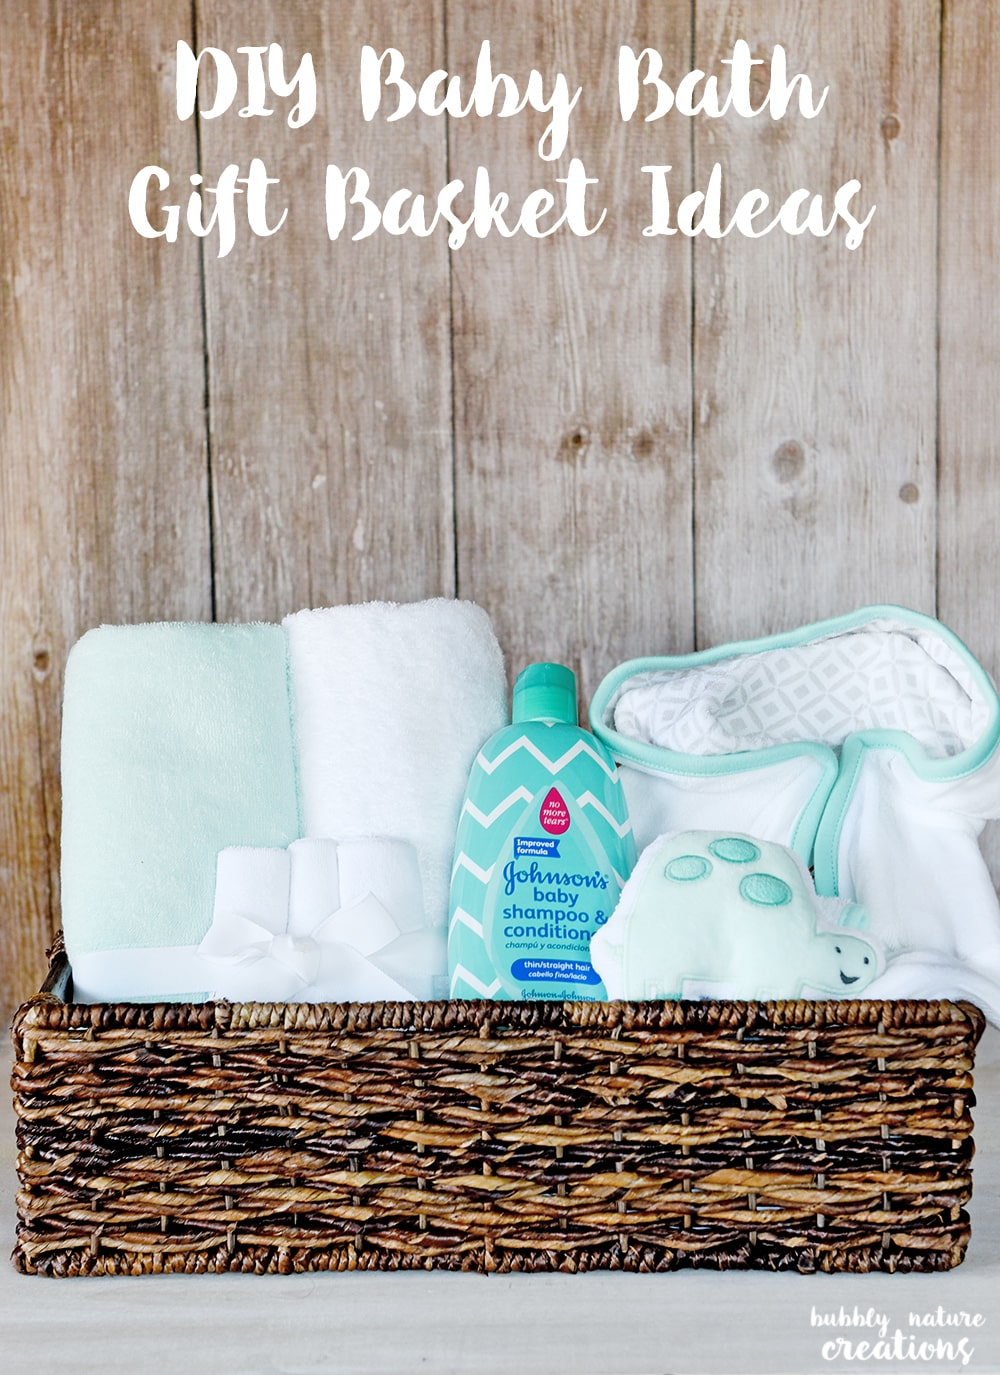 Make Your Own Baby Gift Basket Ideas : Diy baby gift basket ideas sprinkle some fun